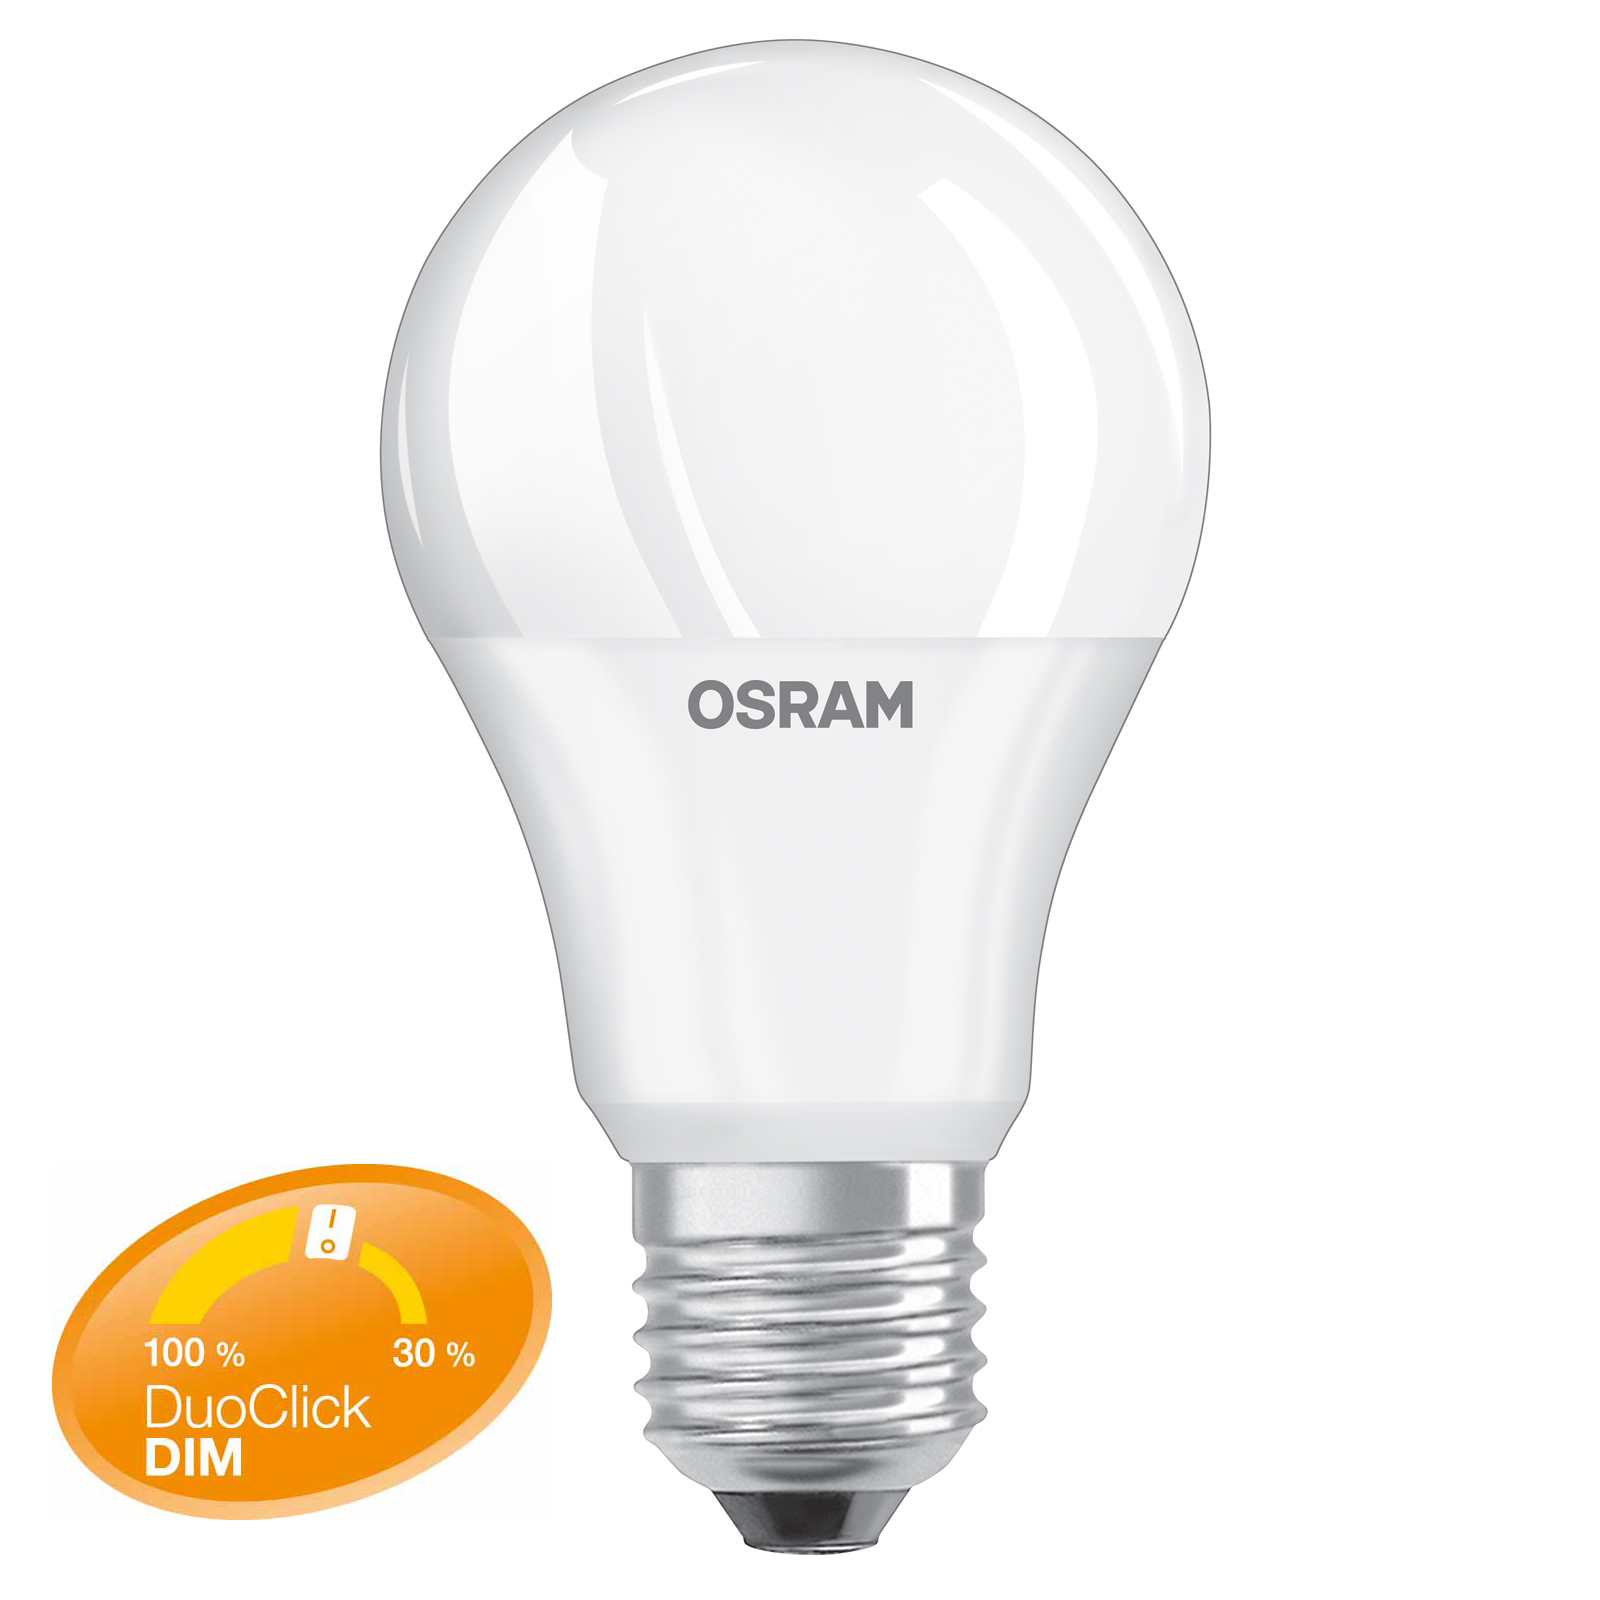 Duo Dimmer Led Dimmen Ohne Dimmer Duo Click Dim Von Osram Led De